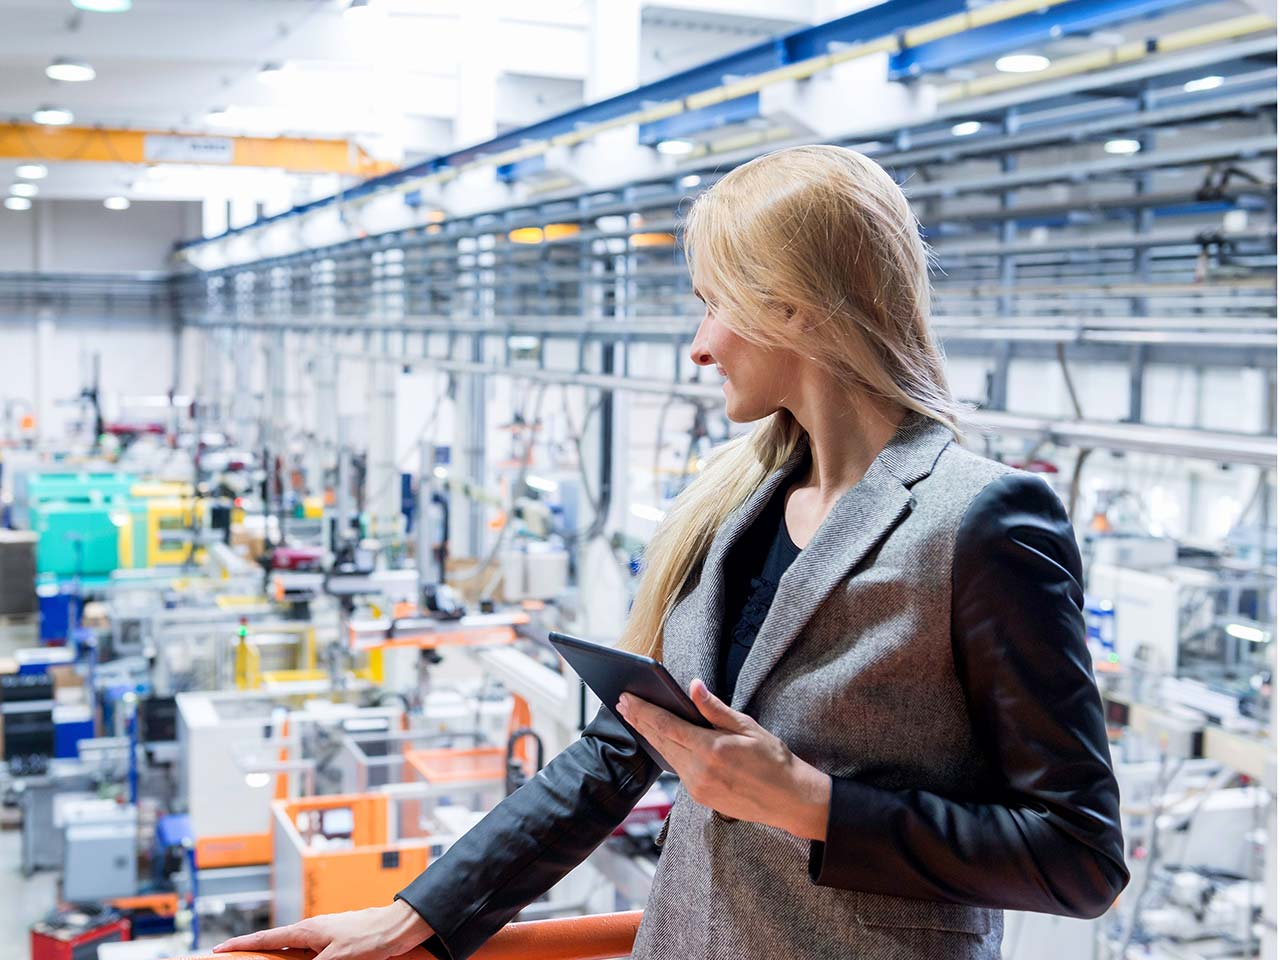 Woman working on a tablet looking out on factory floor